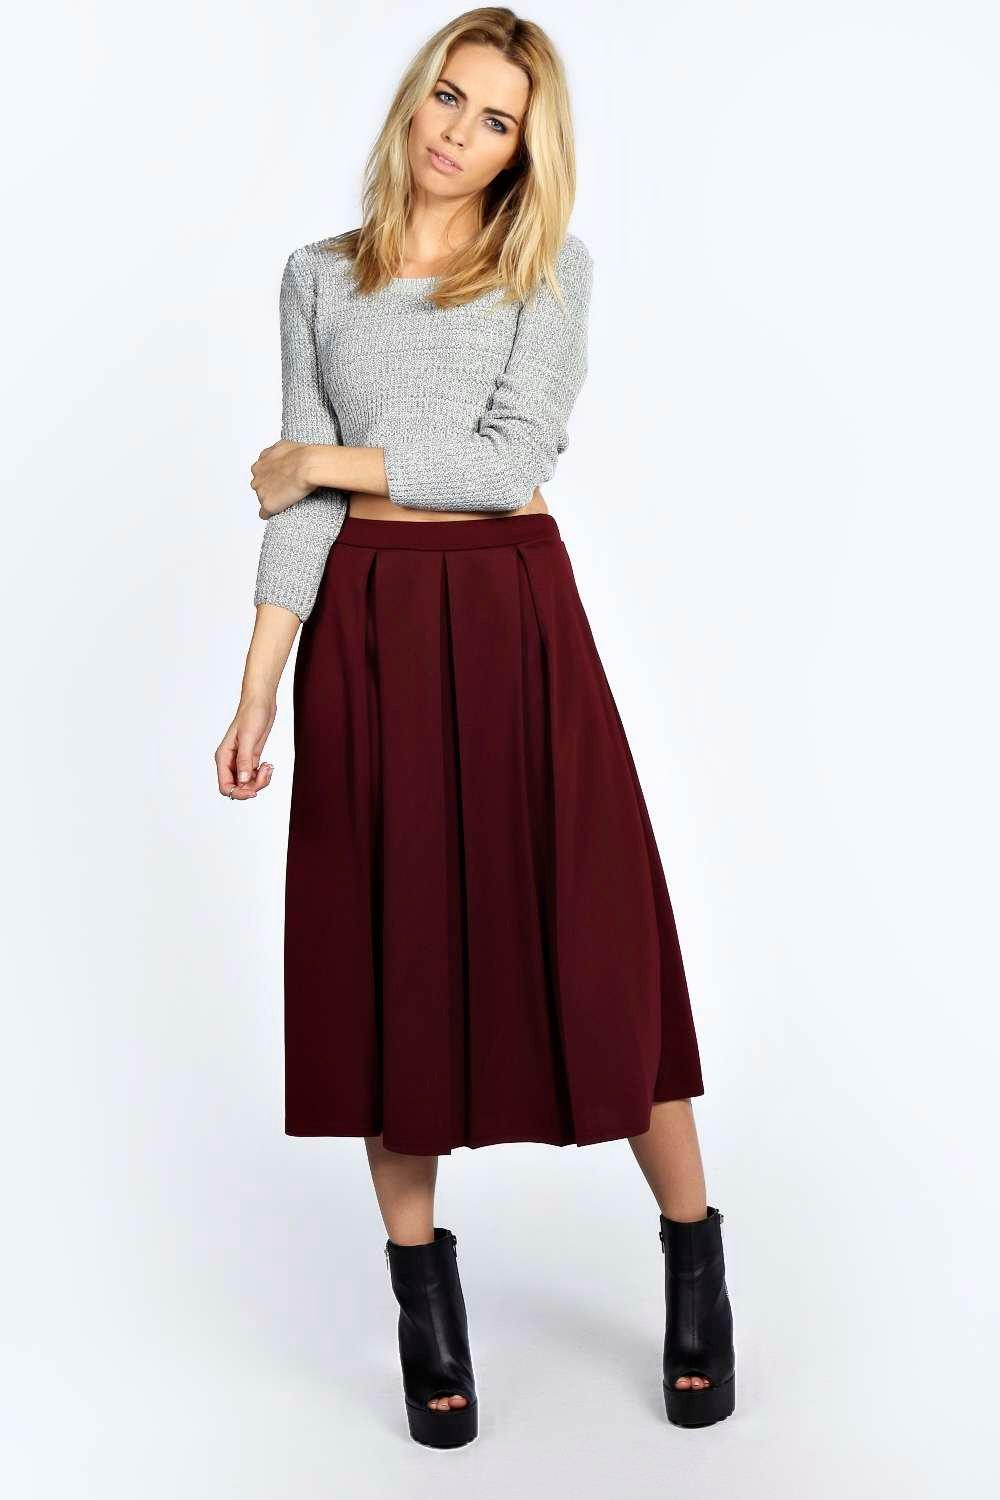 Charlotte Russe Scuba Midi Skater Skirt. Online only! Scuba knit sculpts this adorable midi-length skirt! Box pleats flare from a flat waistband into a full, skater silhouette, while an .